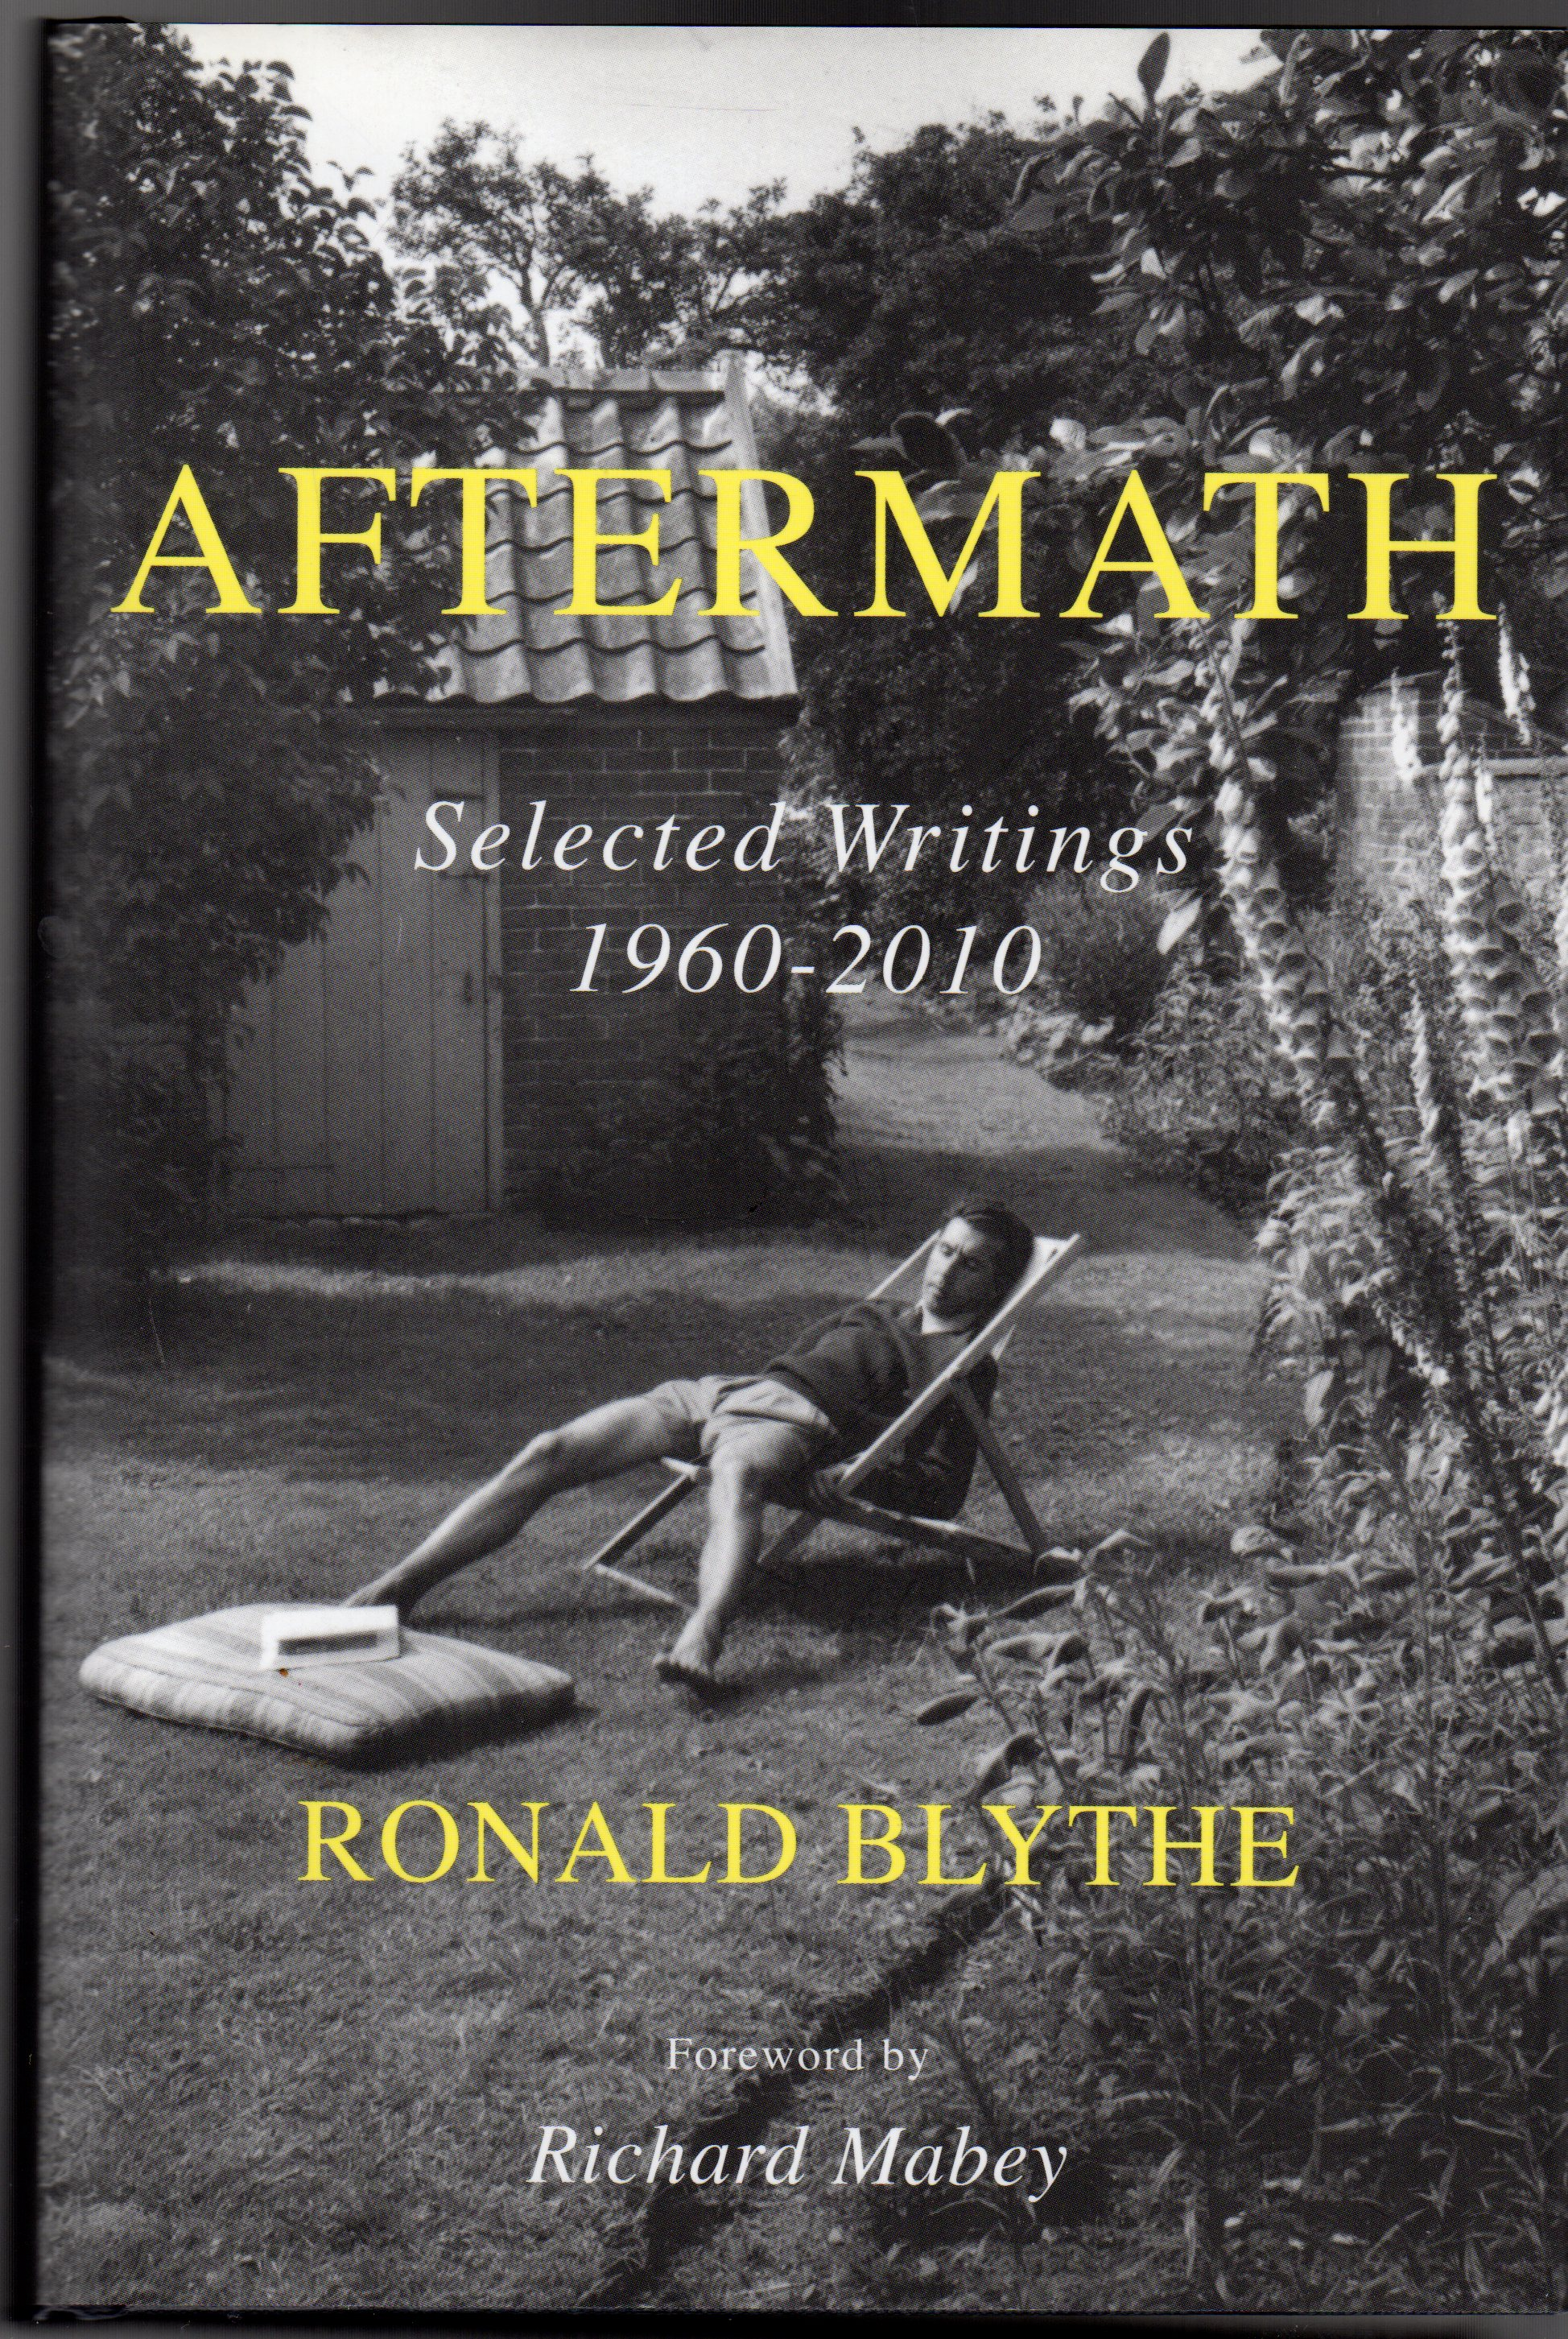 Image for Aftermath: Selected Writings 1960-2010 - SIGNED COPY